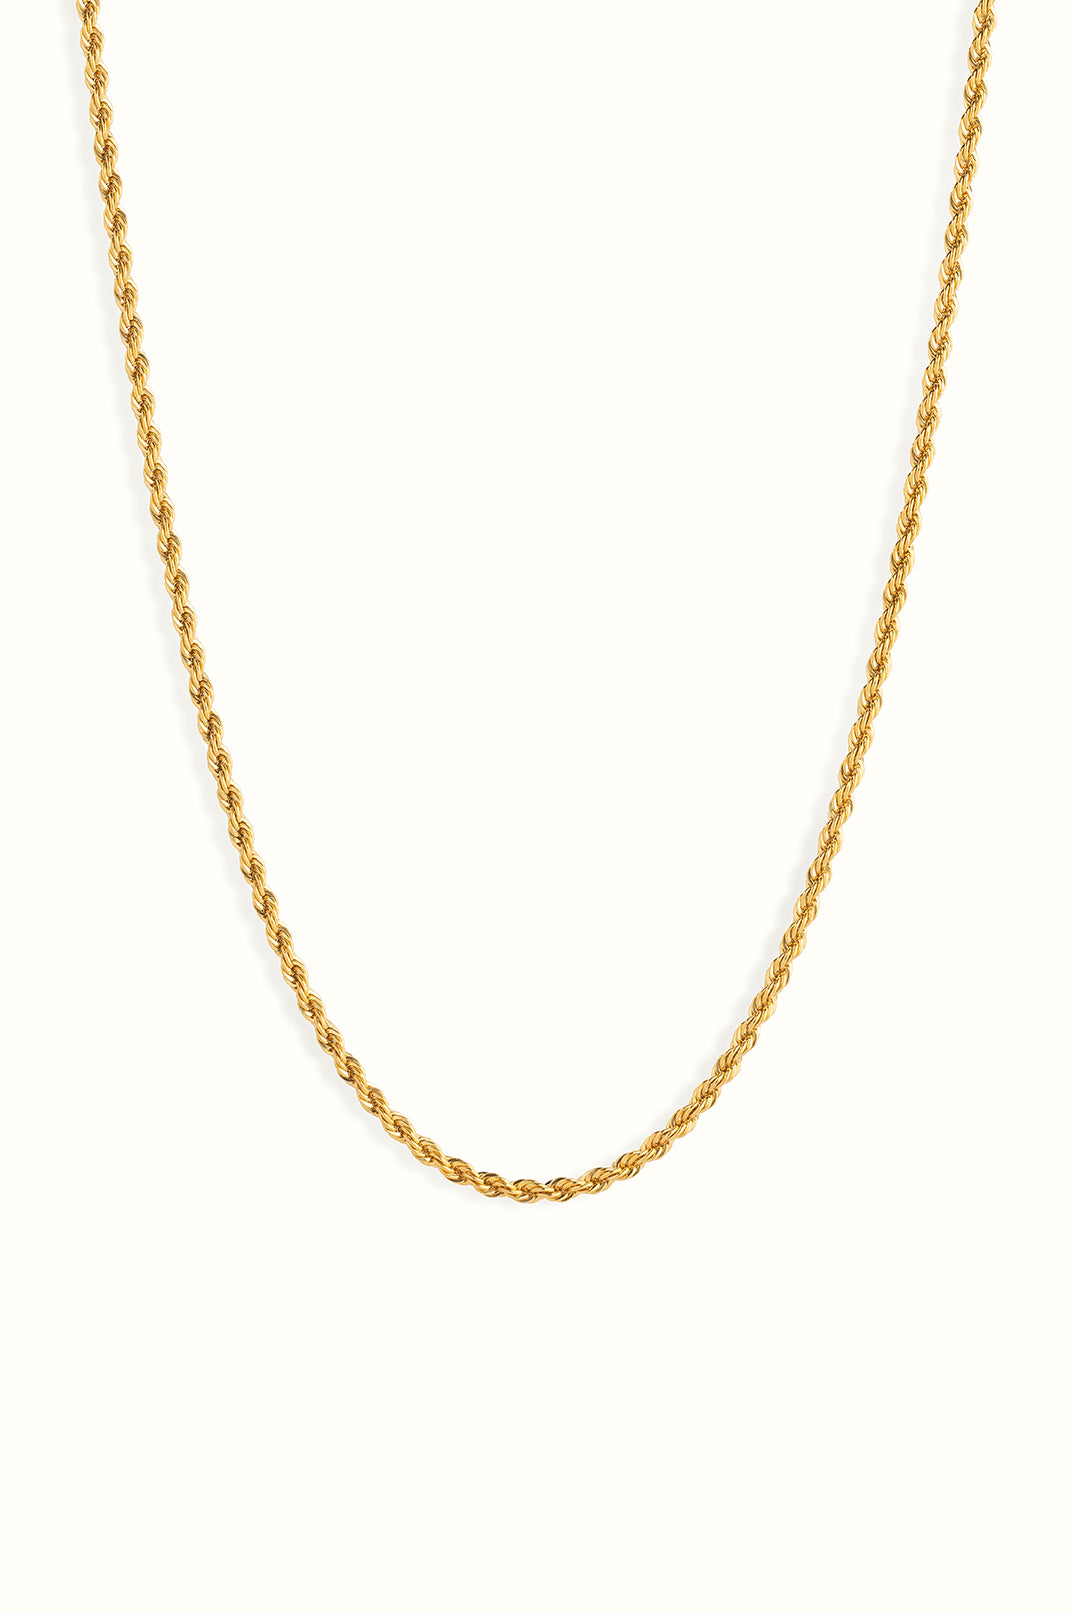 chunky gold filled rope chain necklace in front of a white background